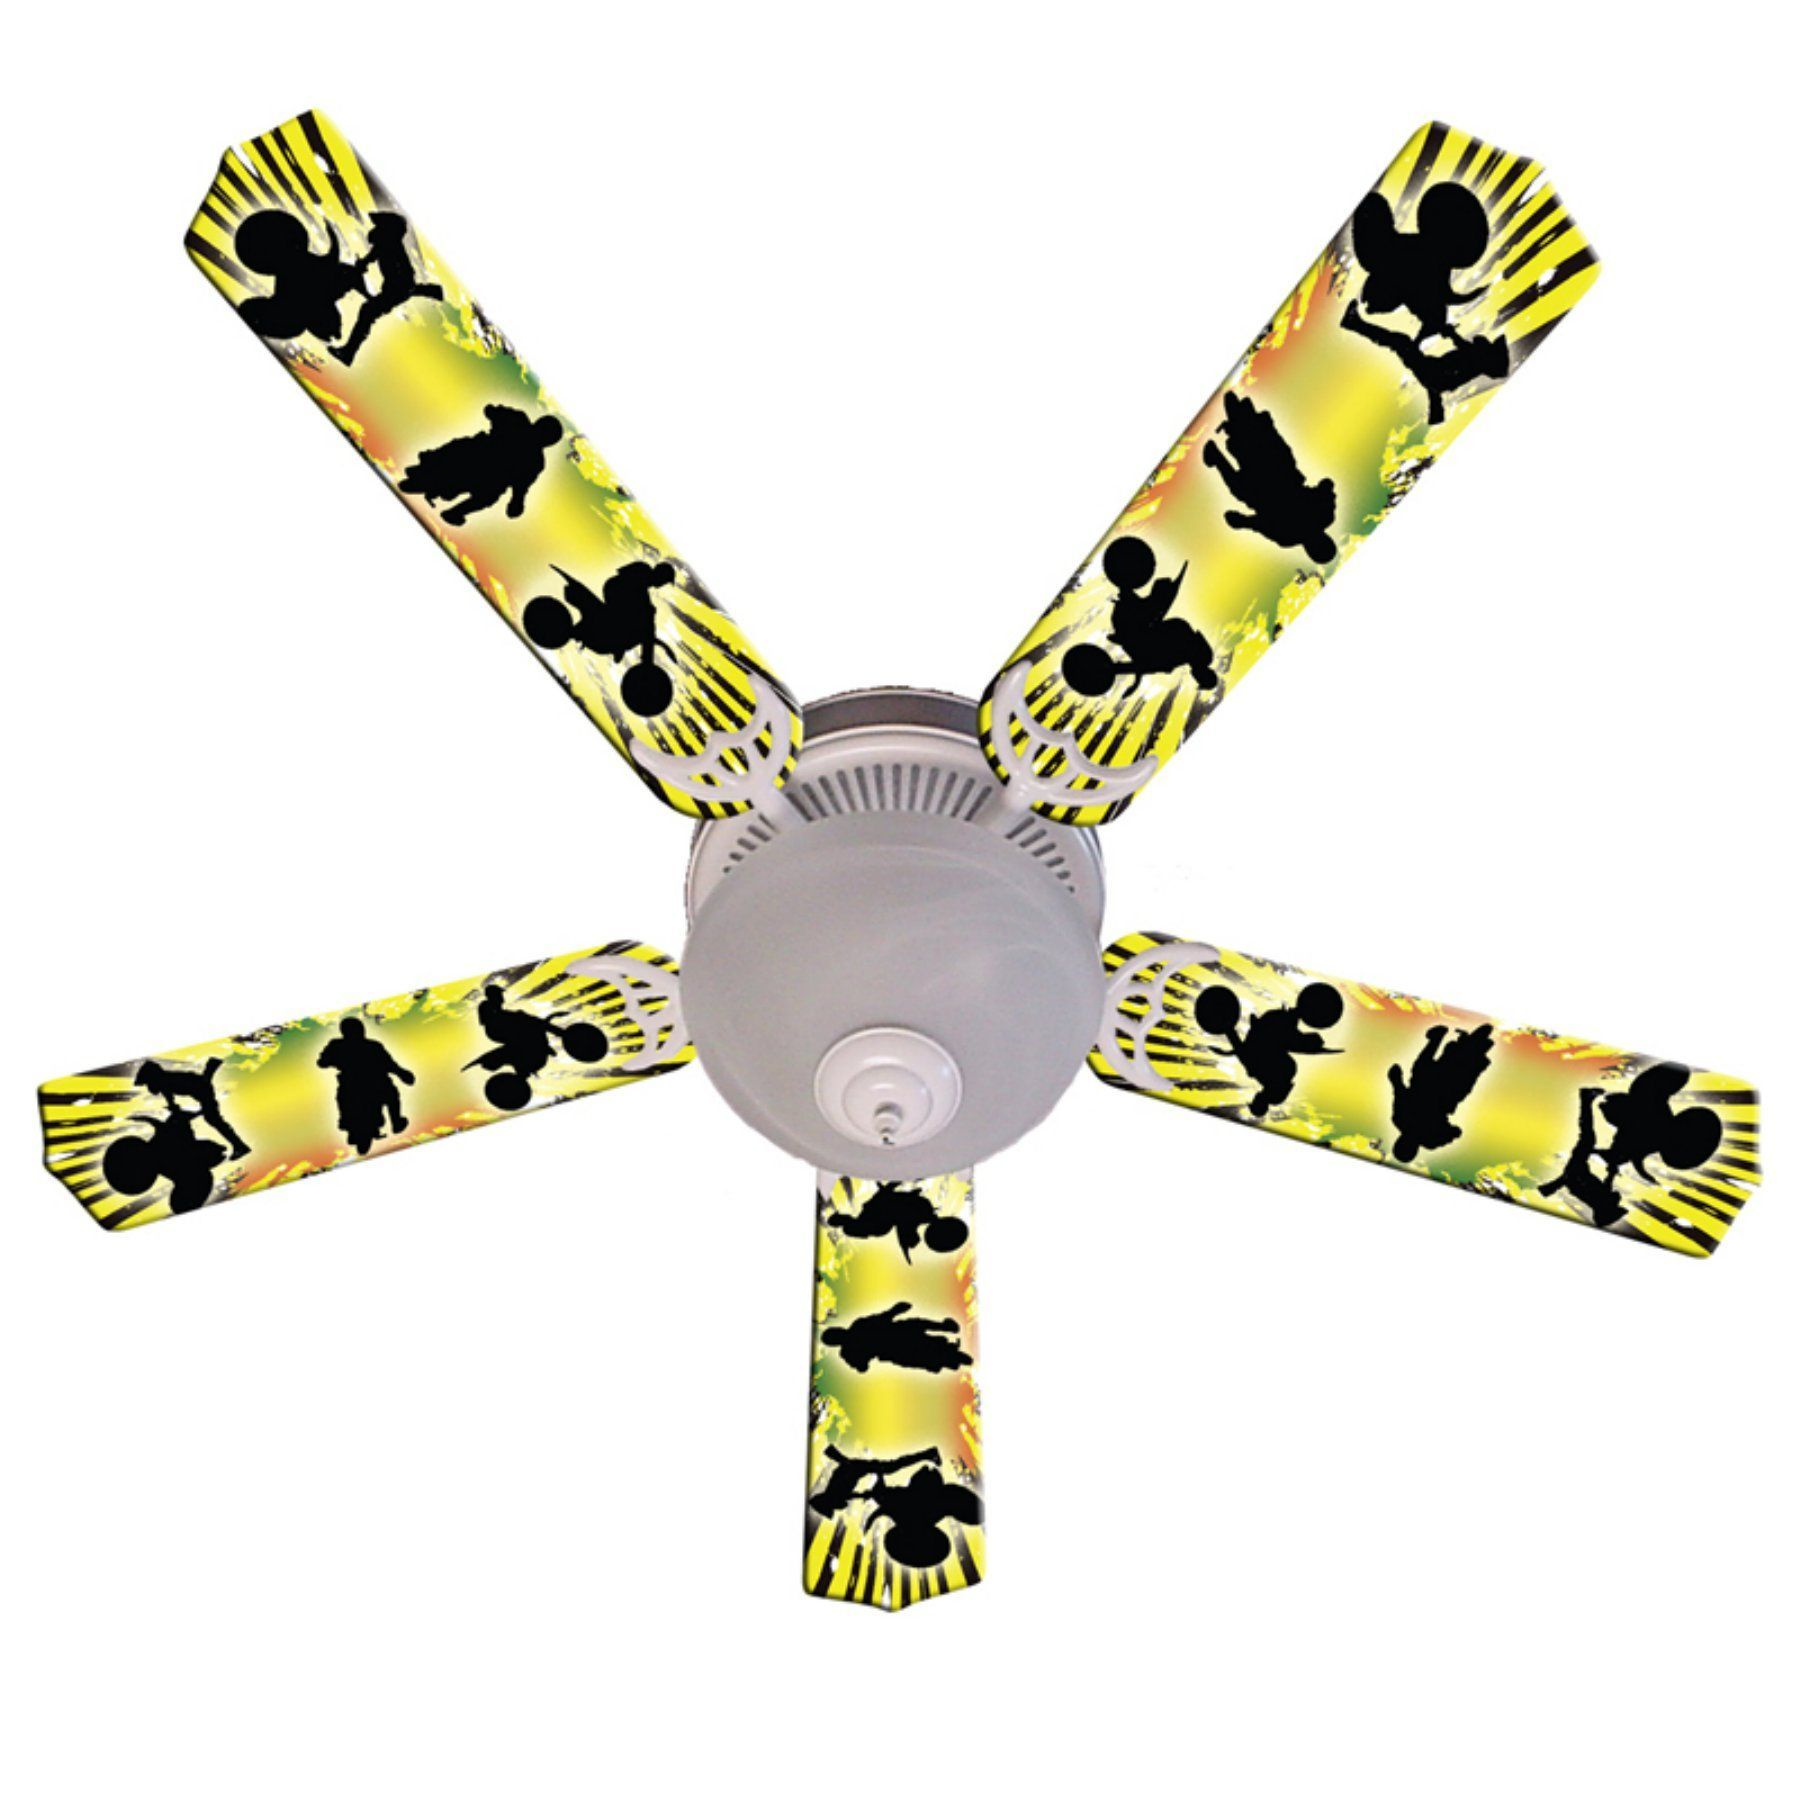 Ceiling Fan Designers Kids Baja MX Motocross Indoor Ceiling Fan